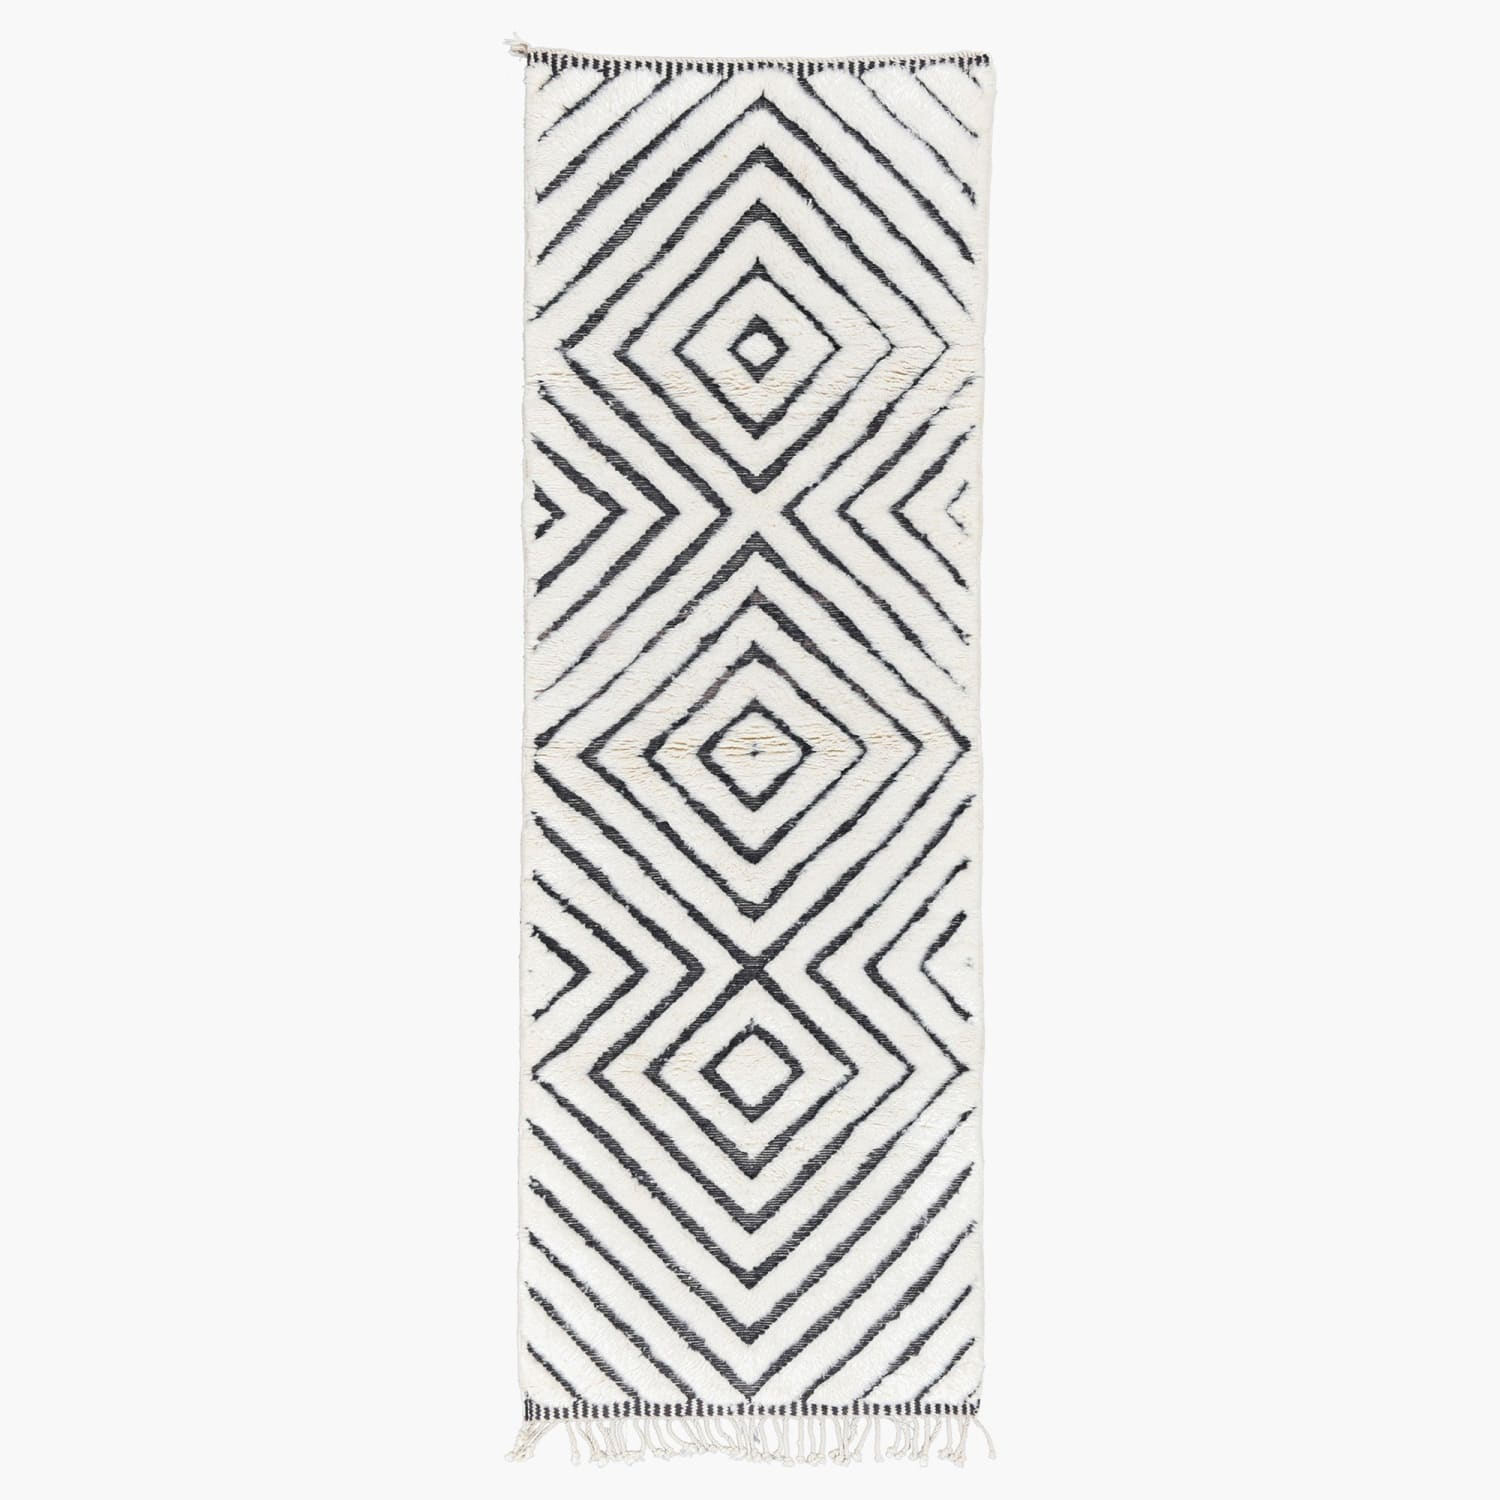 Runner - Luxury Mrirt runner rug - BENISOUK